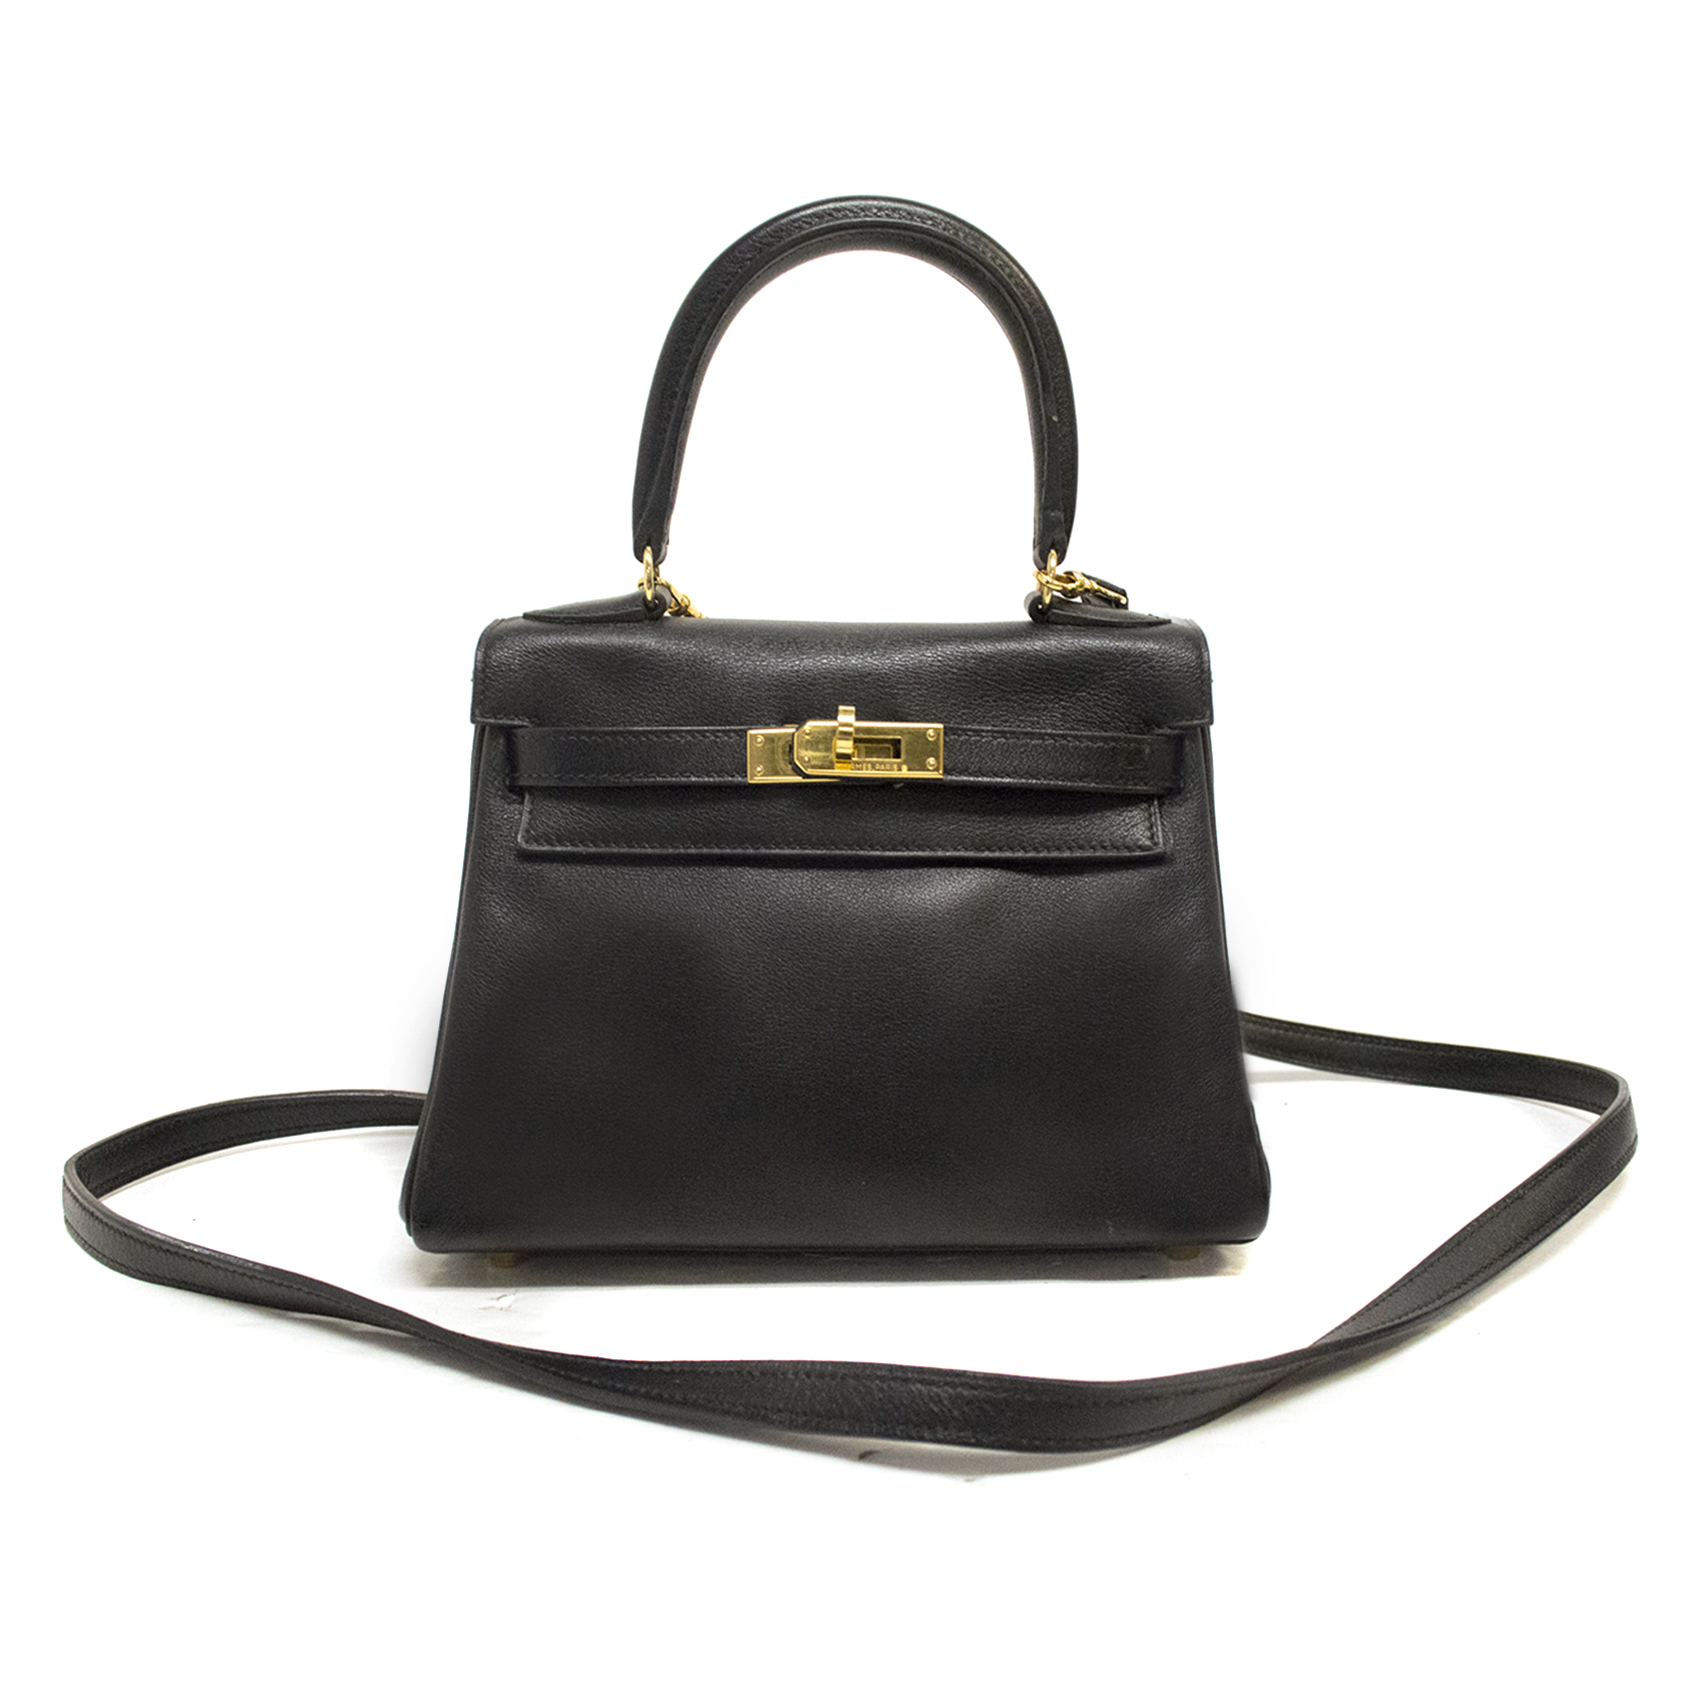 Hermes Black Mini Kelly Bag 20cm in Swift Leather